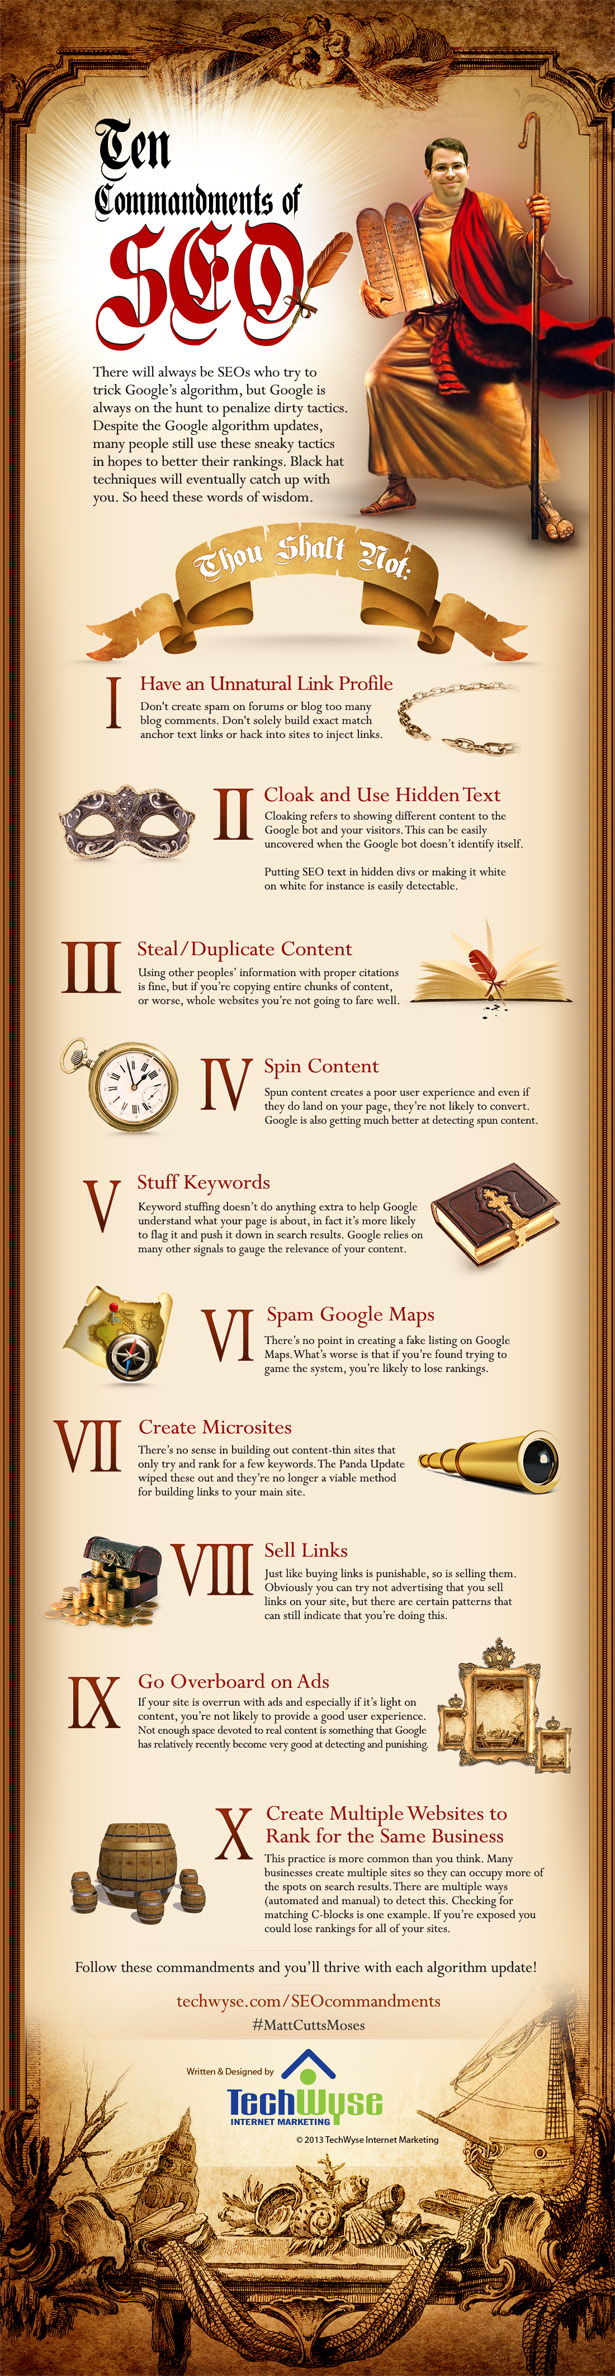 10 Commandments of SEO